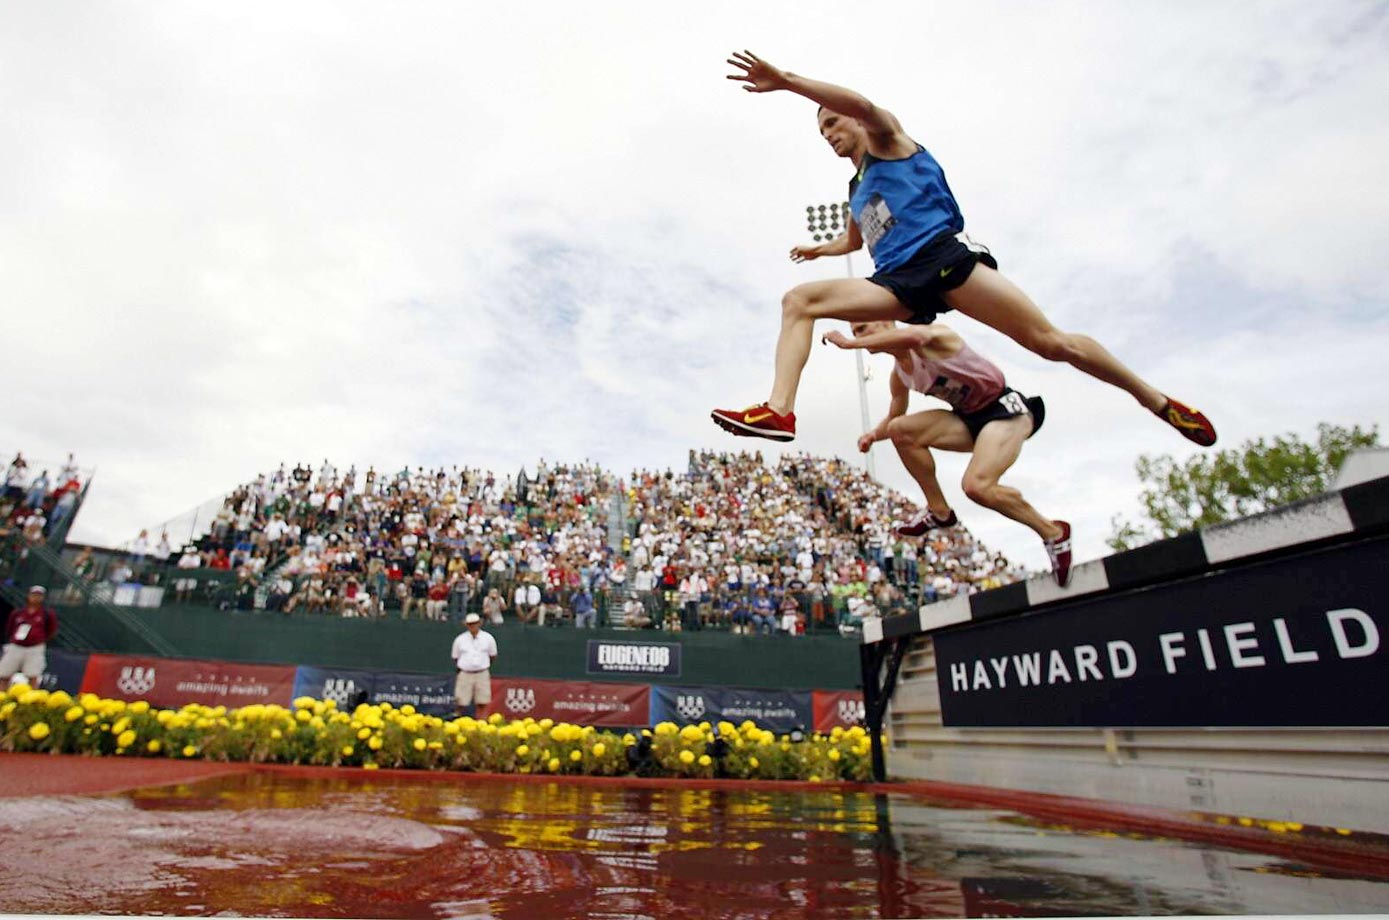 William Nelson and Joshua McAdams during the 3,000-meter Steeplechase at the 2008 U.S. Team Trials.